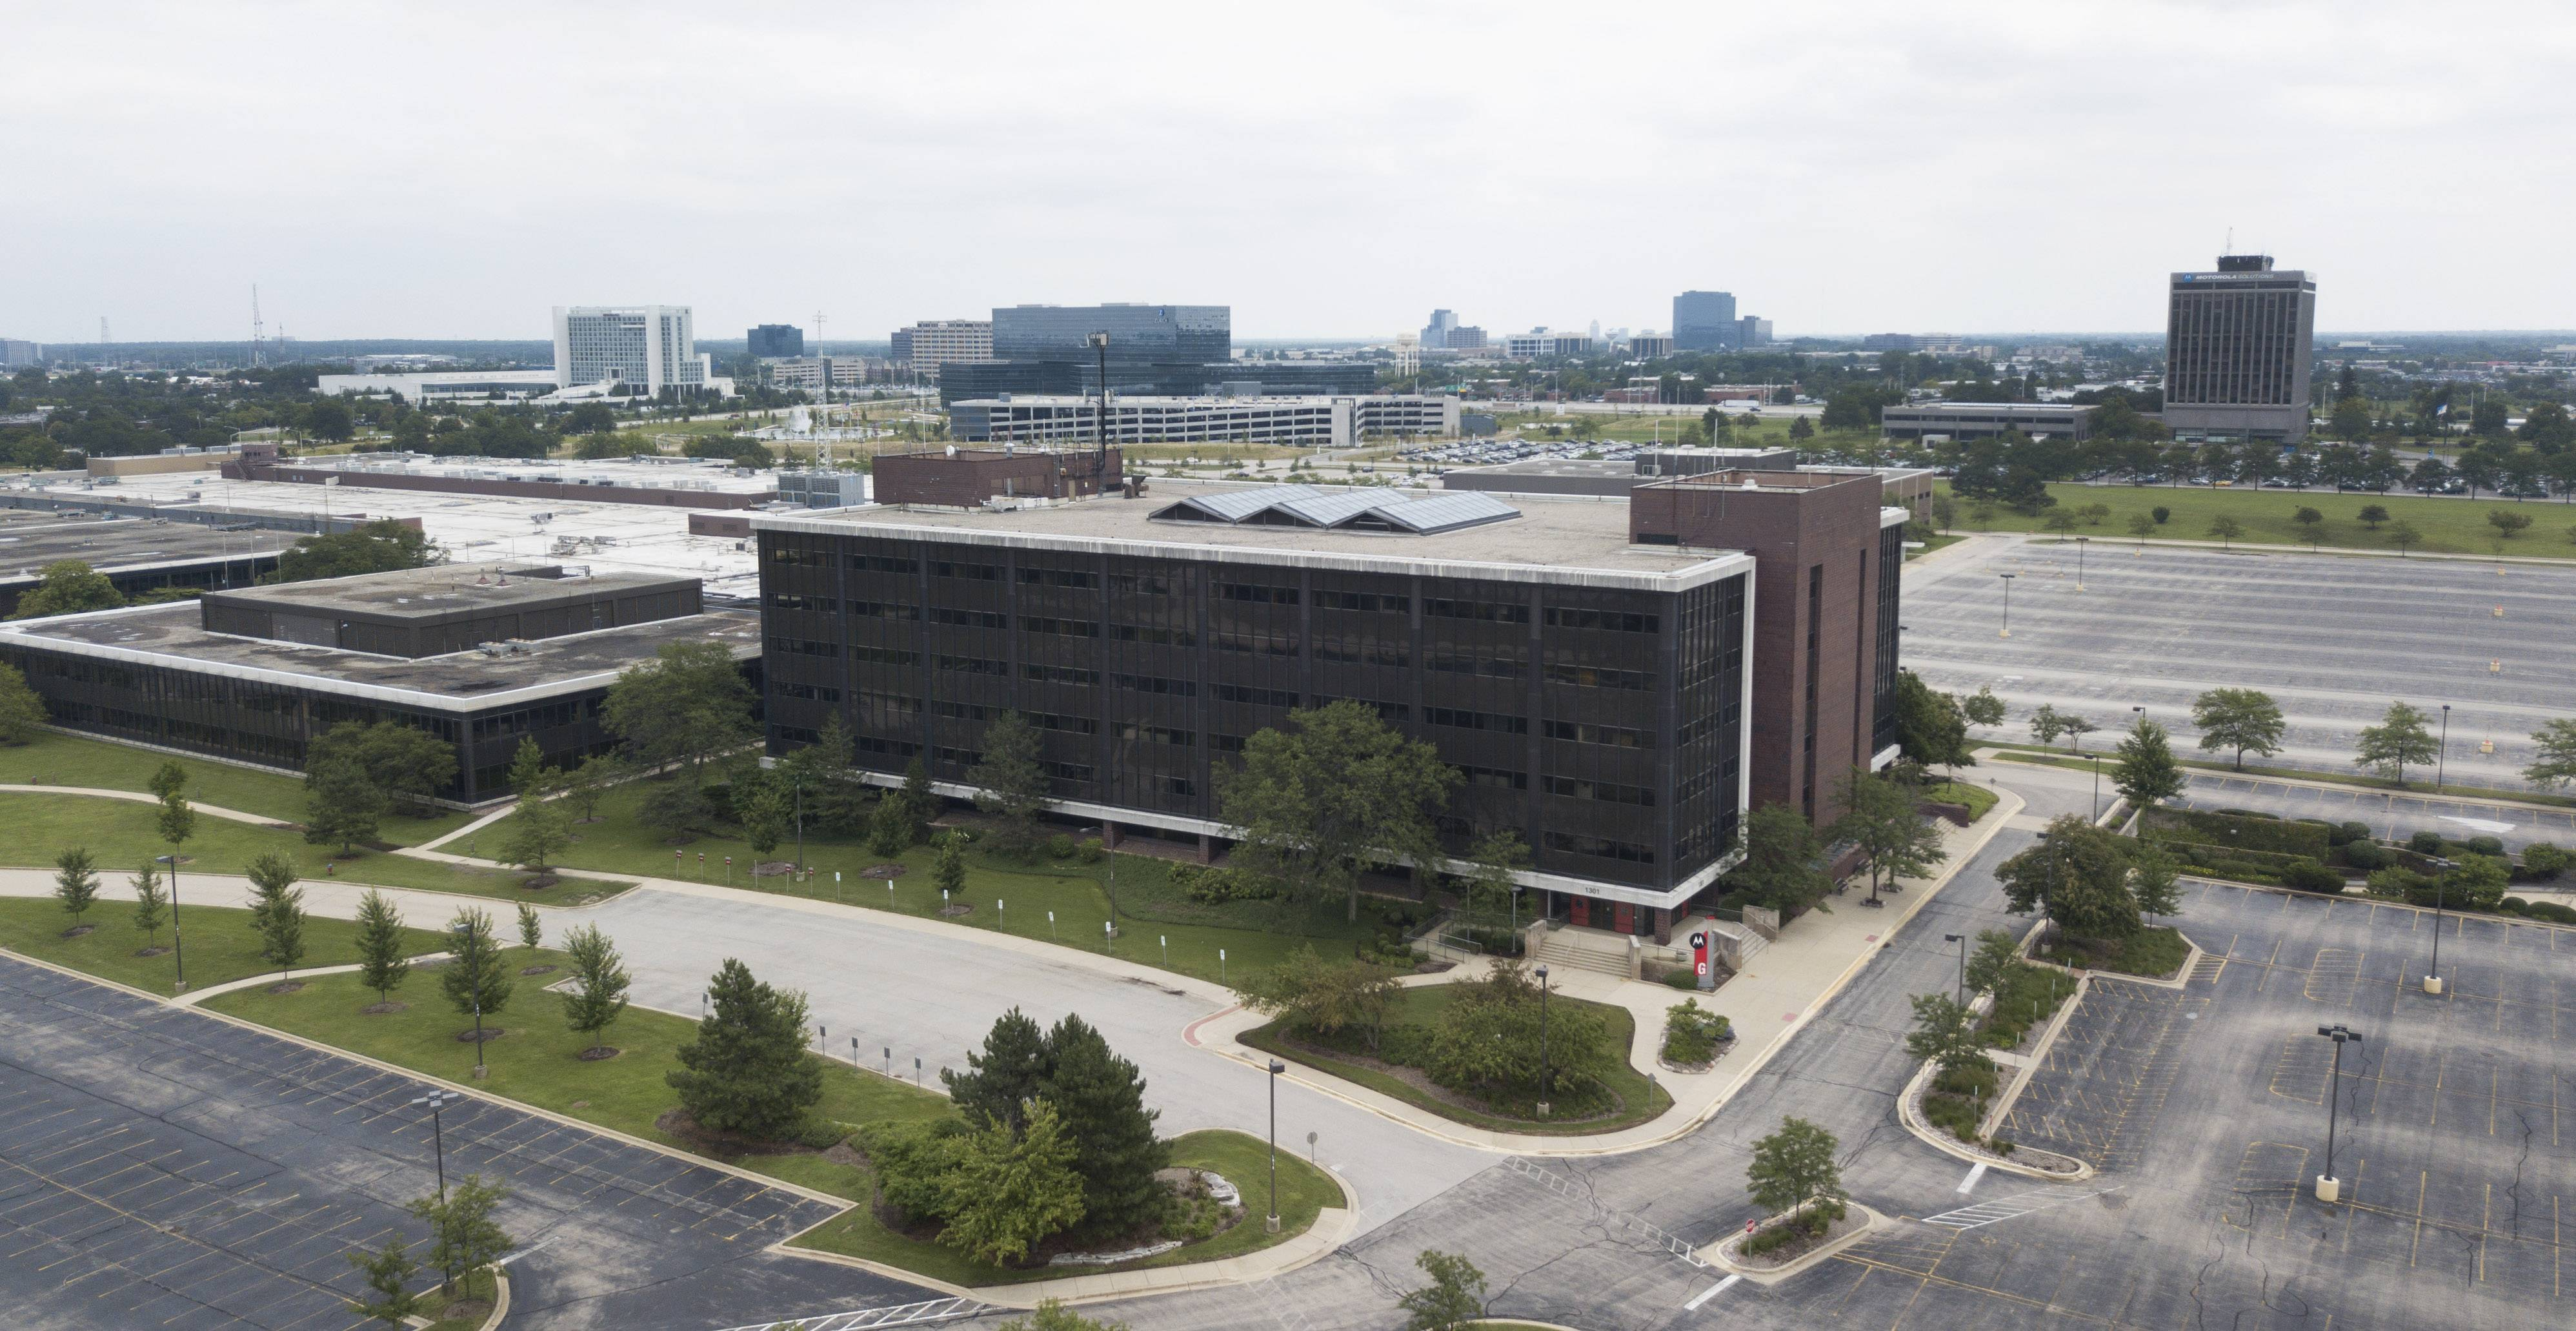 Schaumburg trustees Tuesday approved a revision of the land-use plan for the former Motorola Solutions site along Algonquin Road that would make it a mixture of homes, offices, stores, restaurants, entertainment venues and possibly a hotel.